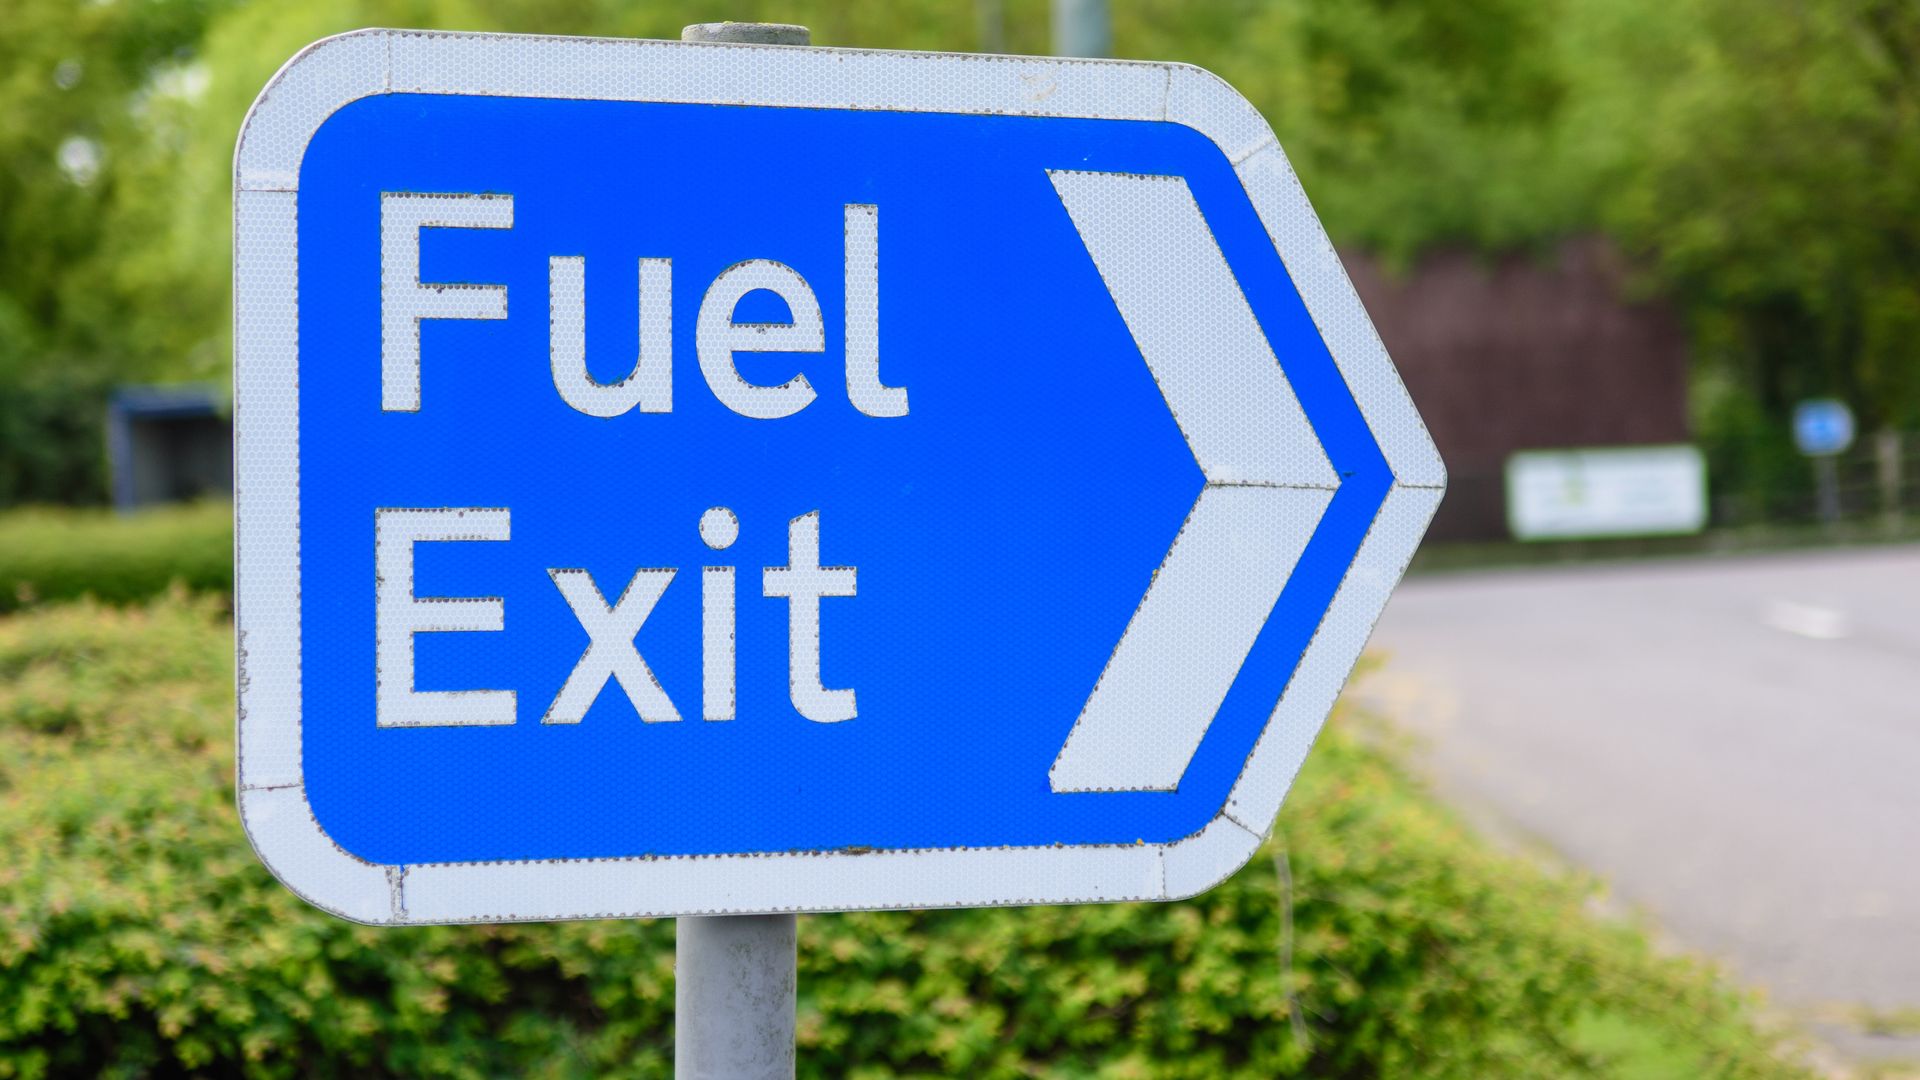 Shocking cost of motorway fuel revealed